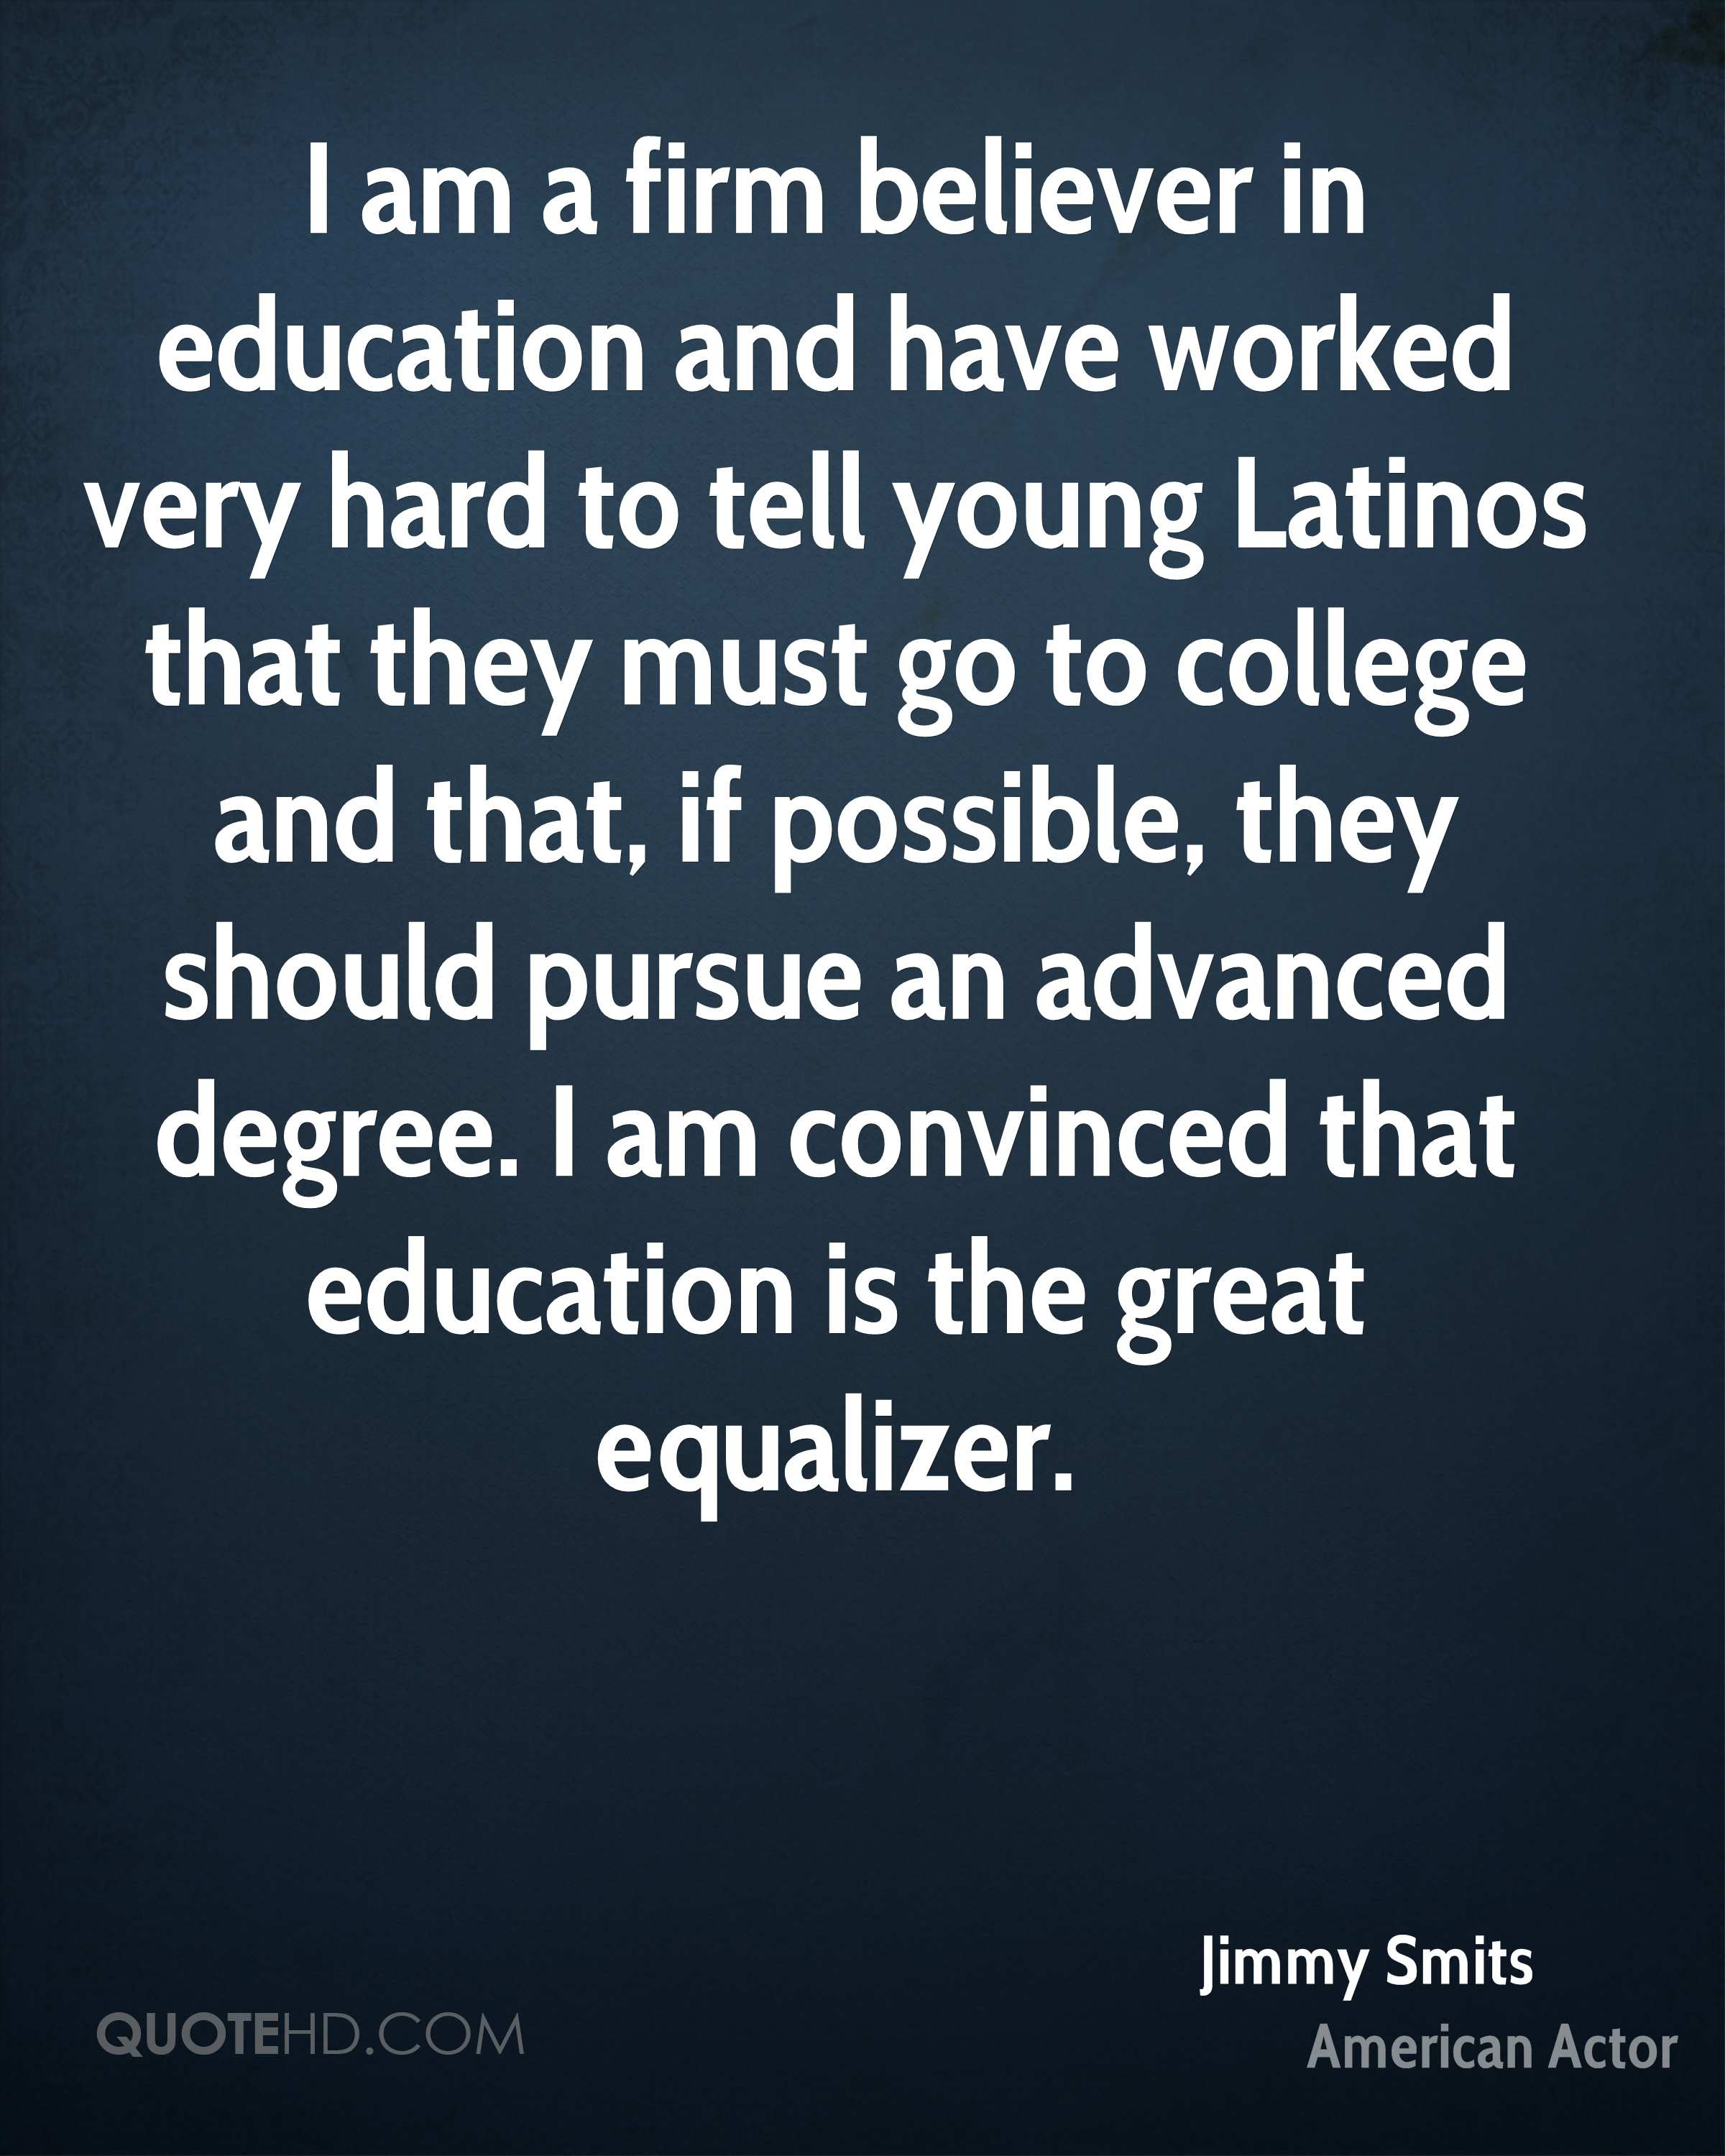 Jimmy Smits Education Quotes Quotehd